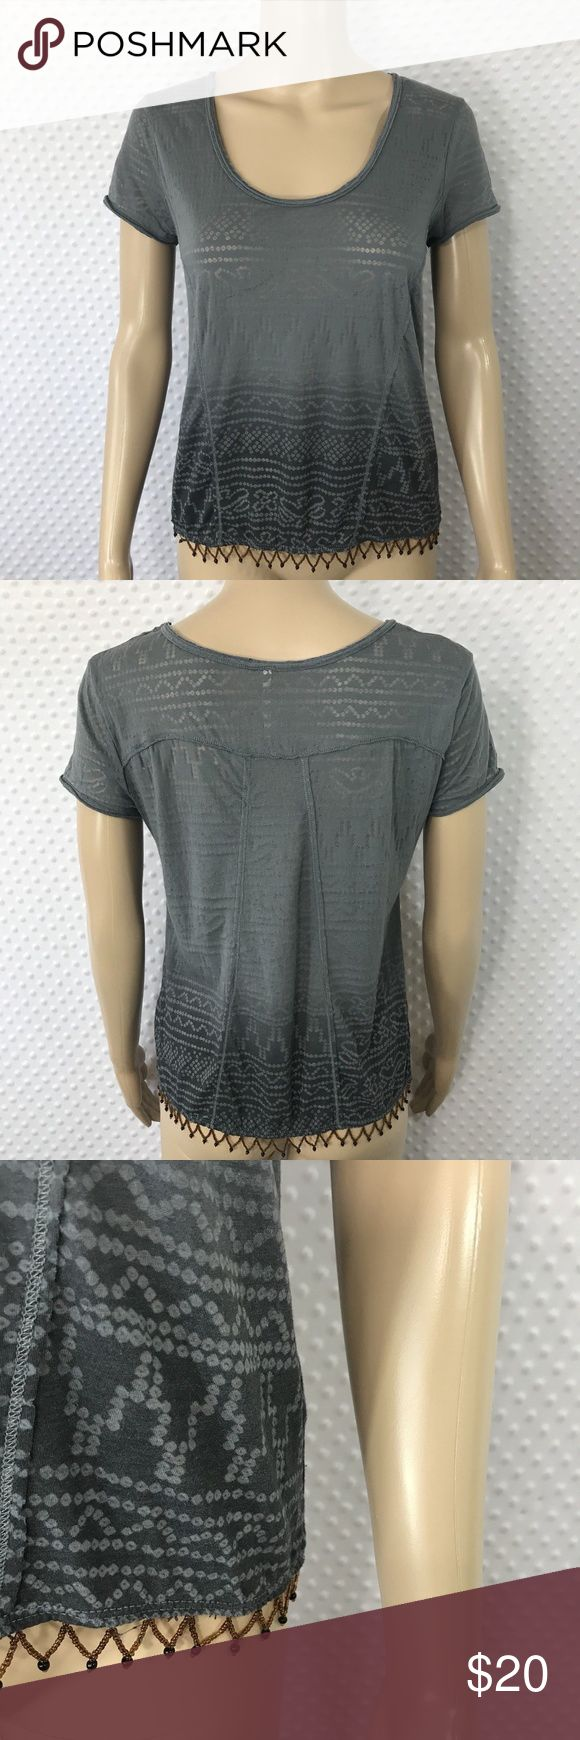 Free People Beaded Top Gray Short Sleeve Boho Item: Free People Beaded Top Gray Short Sleeve Boho Loose Tribal Shirt Sz Extra Small  Size: Extra Small  Refer to measurements below for accurate fit!  Measured flat:   17       inches armpit to armpit  1       inches armpit to the end of the sleeve  19       inches from collar seam to shirttail         Base Color:  Gray   Fabric: Cotton, Polyester  Please look at photos for better description Free People Tops Blouses